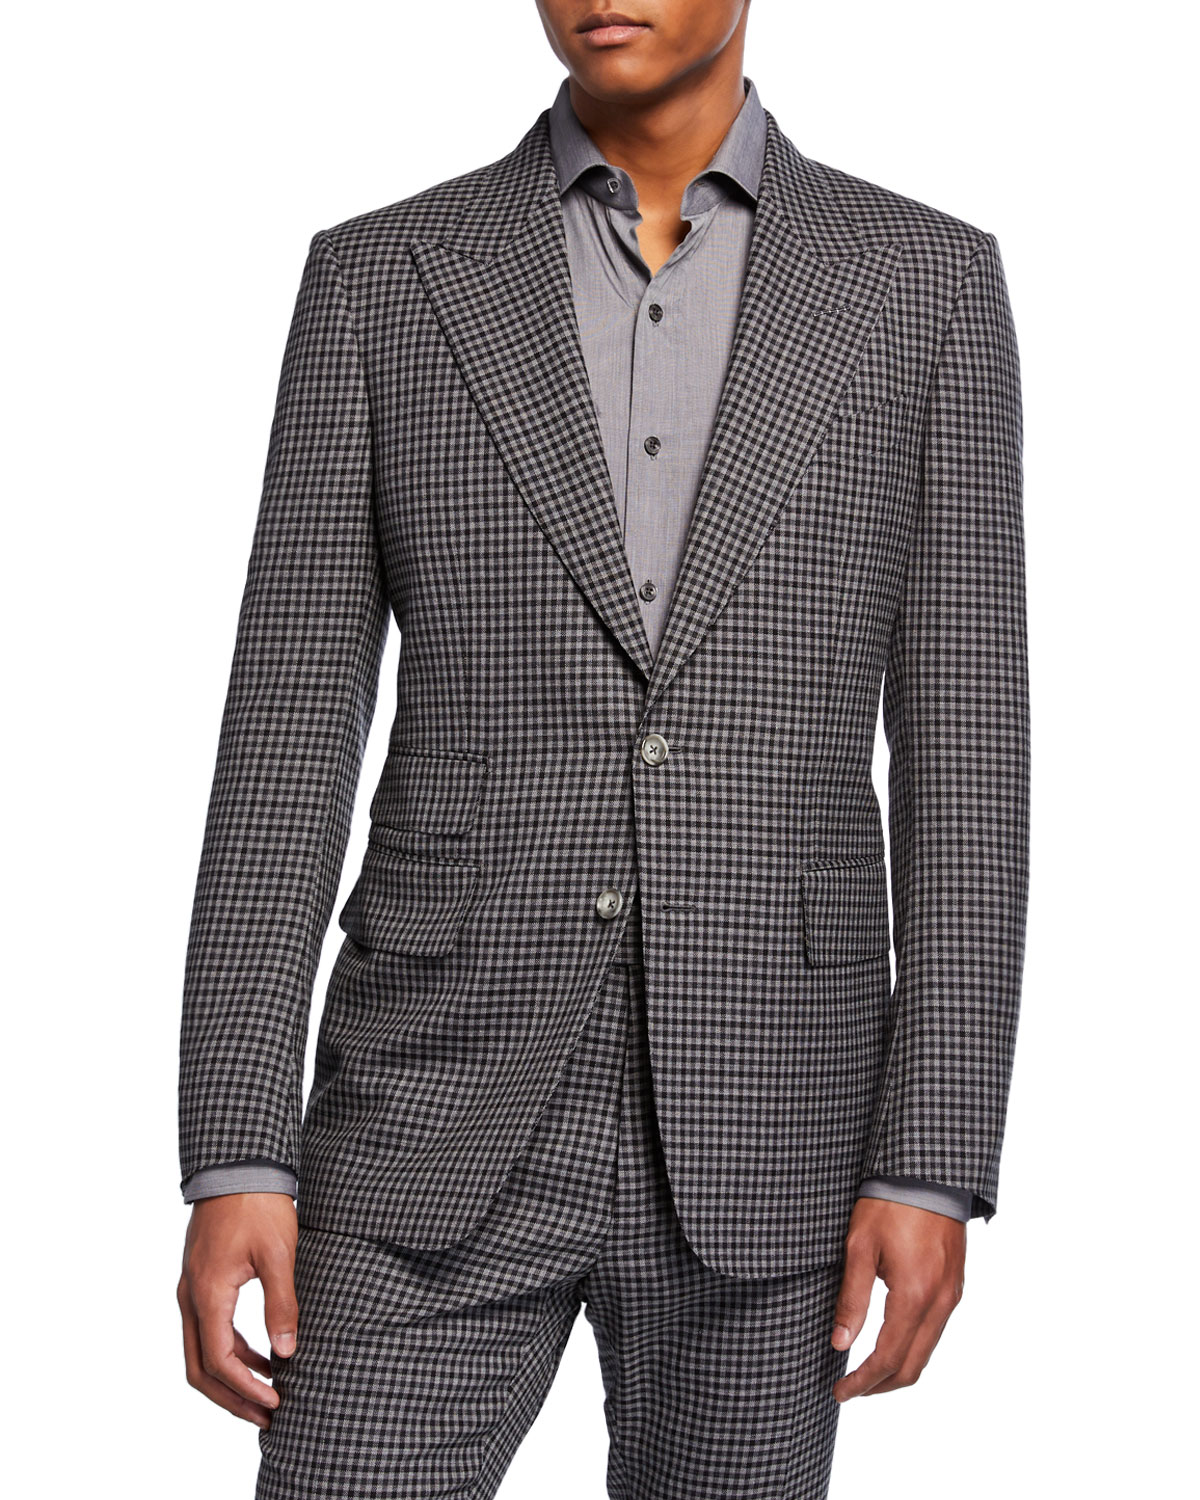 Tom Ford Men's Shelton Micro-Check Wool-Blend Two-Piece Suit In Dark Gray